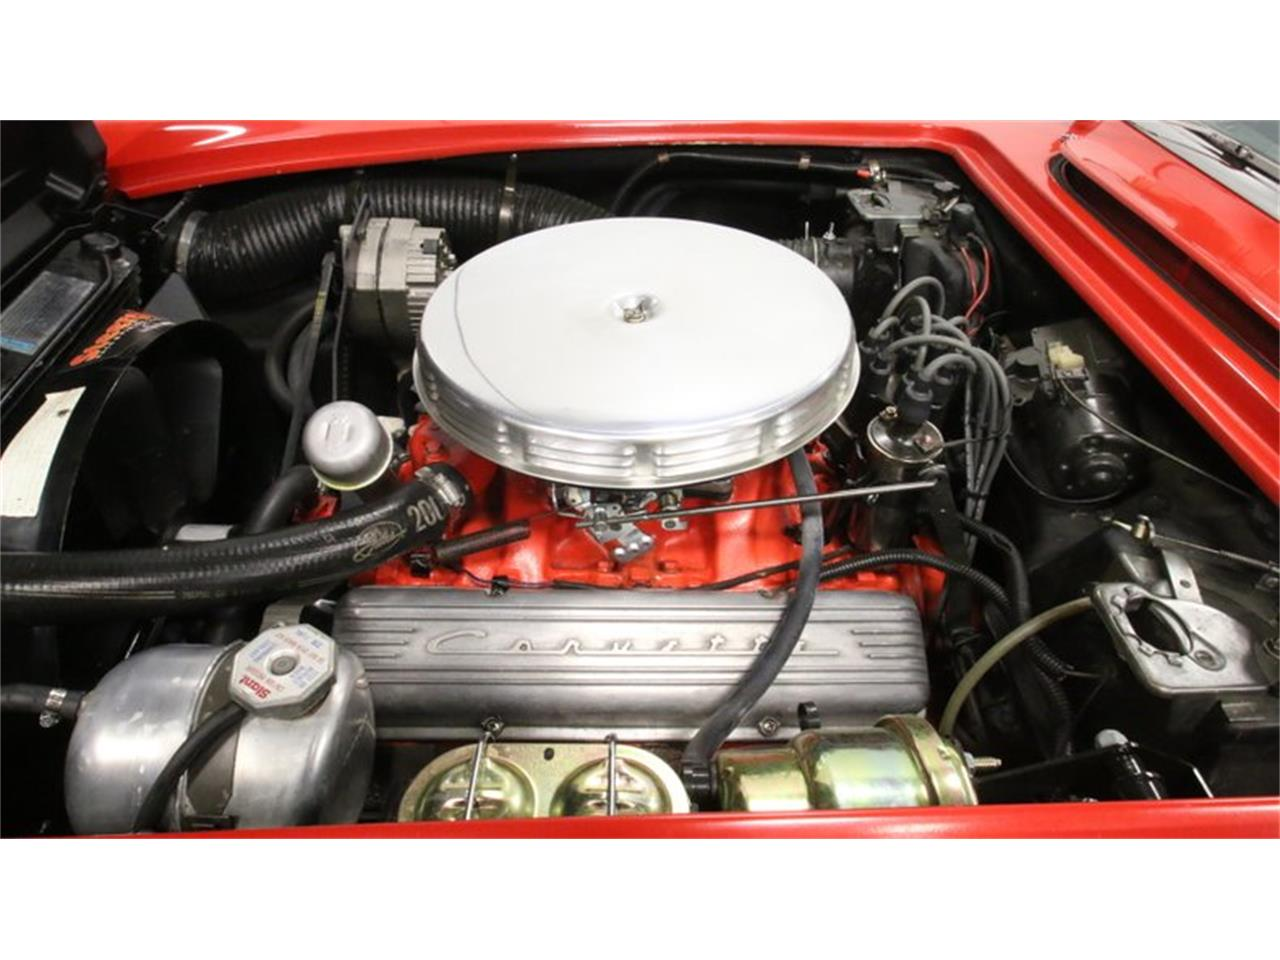 Large Picture of Classic 1962 Chevrolet Corvette located in Lithia Springs Georgia Offered by Streetside Classics - Atlanta - Q72N